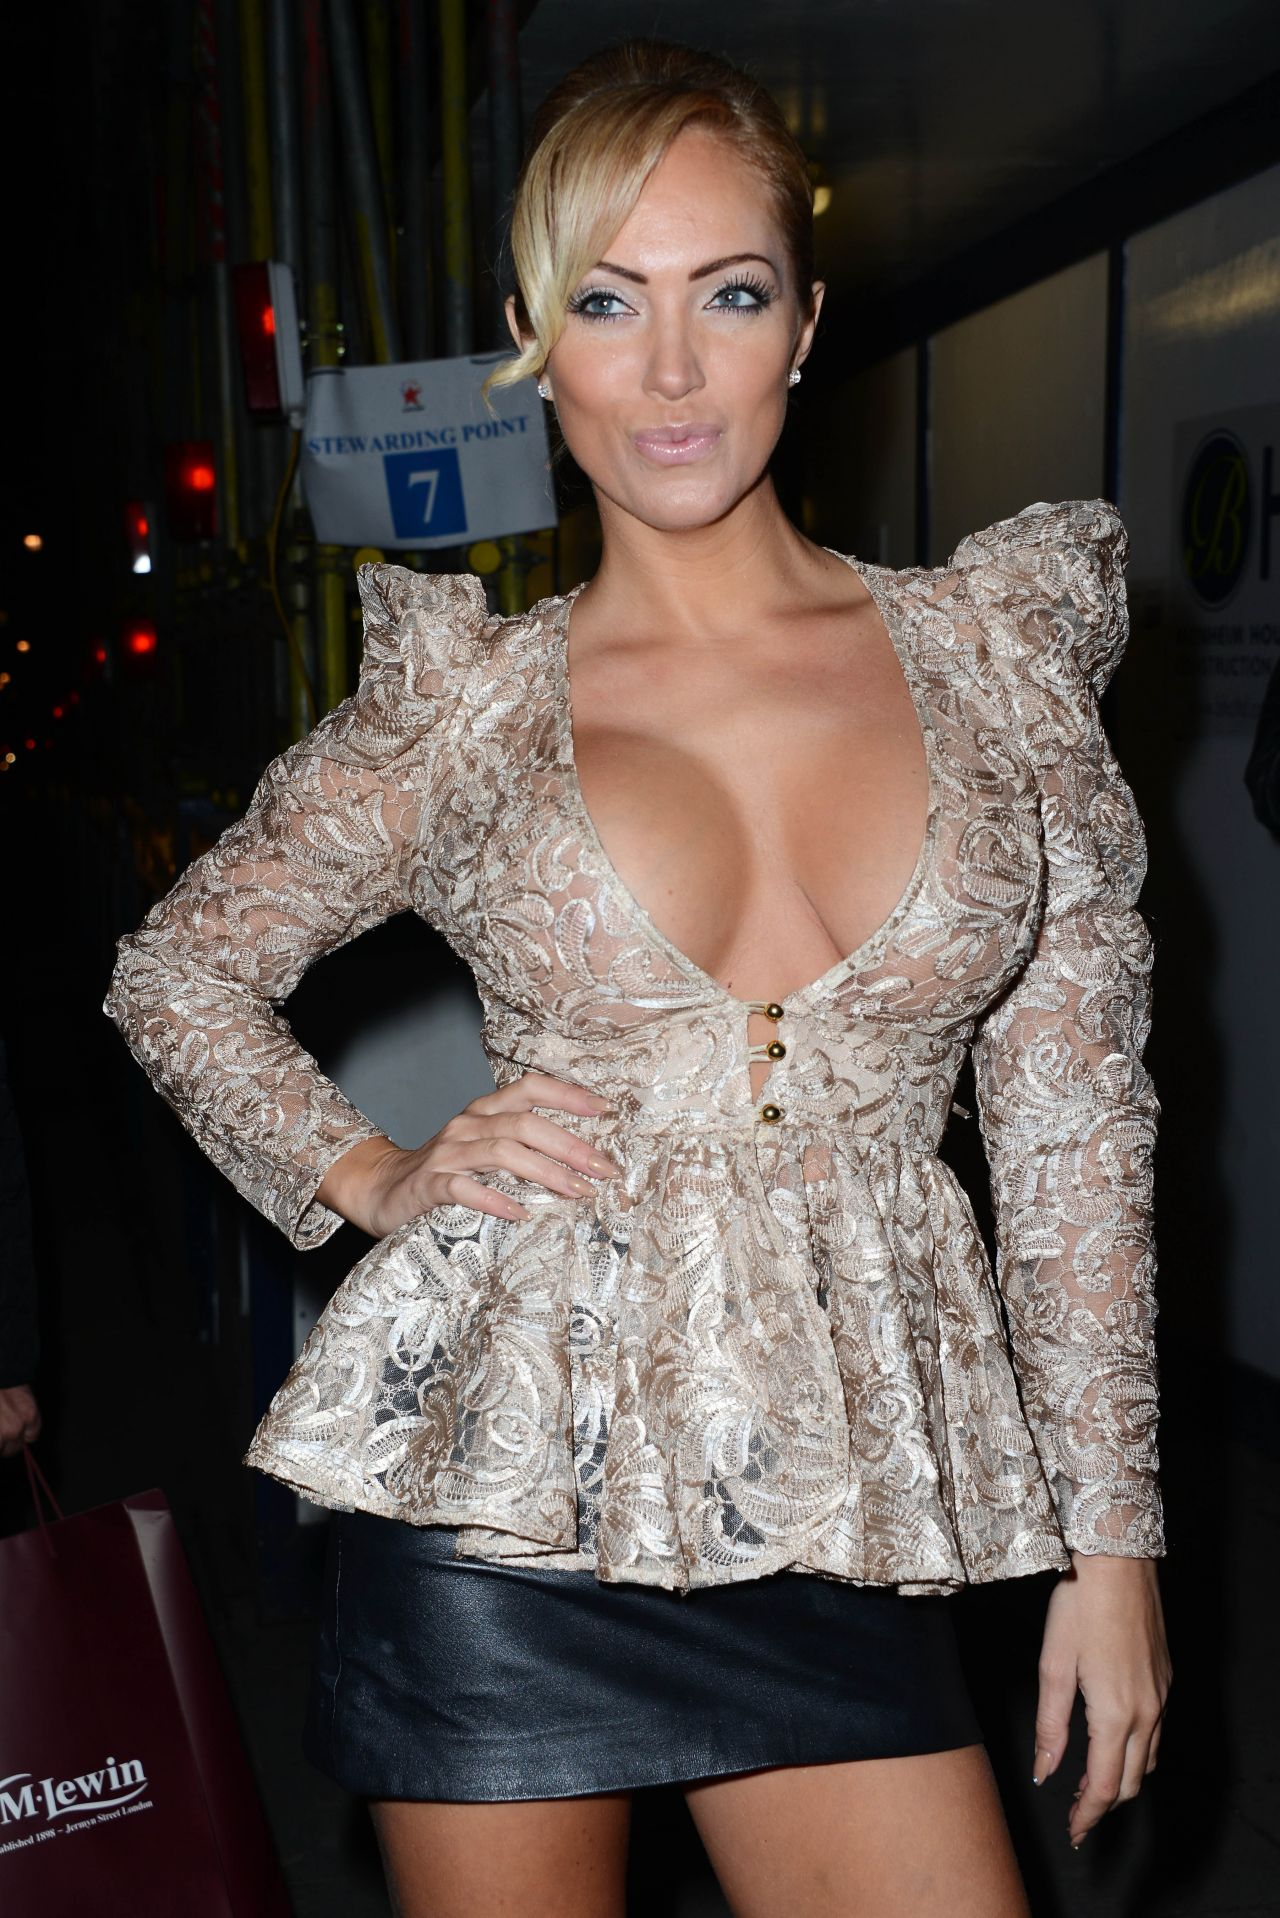 Aisleyne Horgan - WALLACE NUTS Magazine Party - London, January 2014